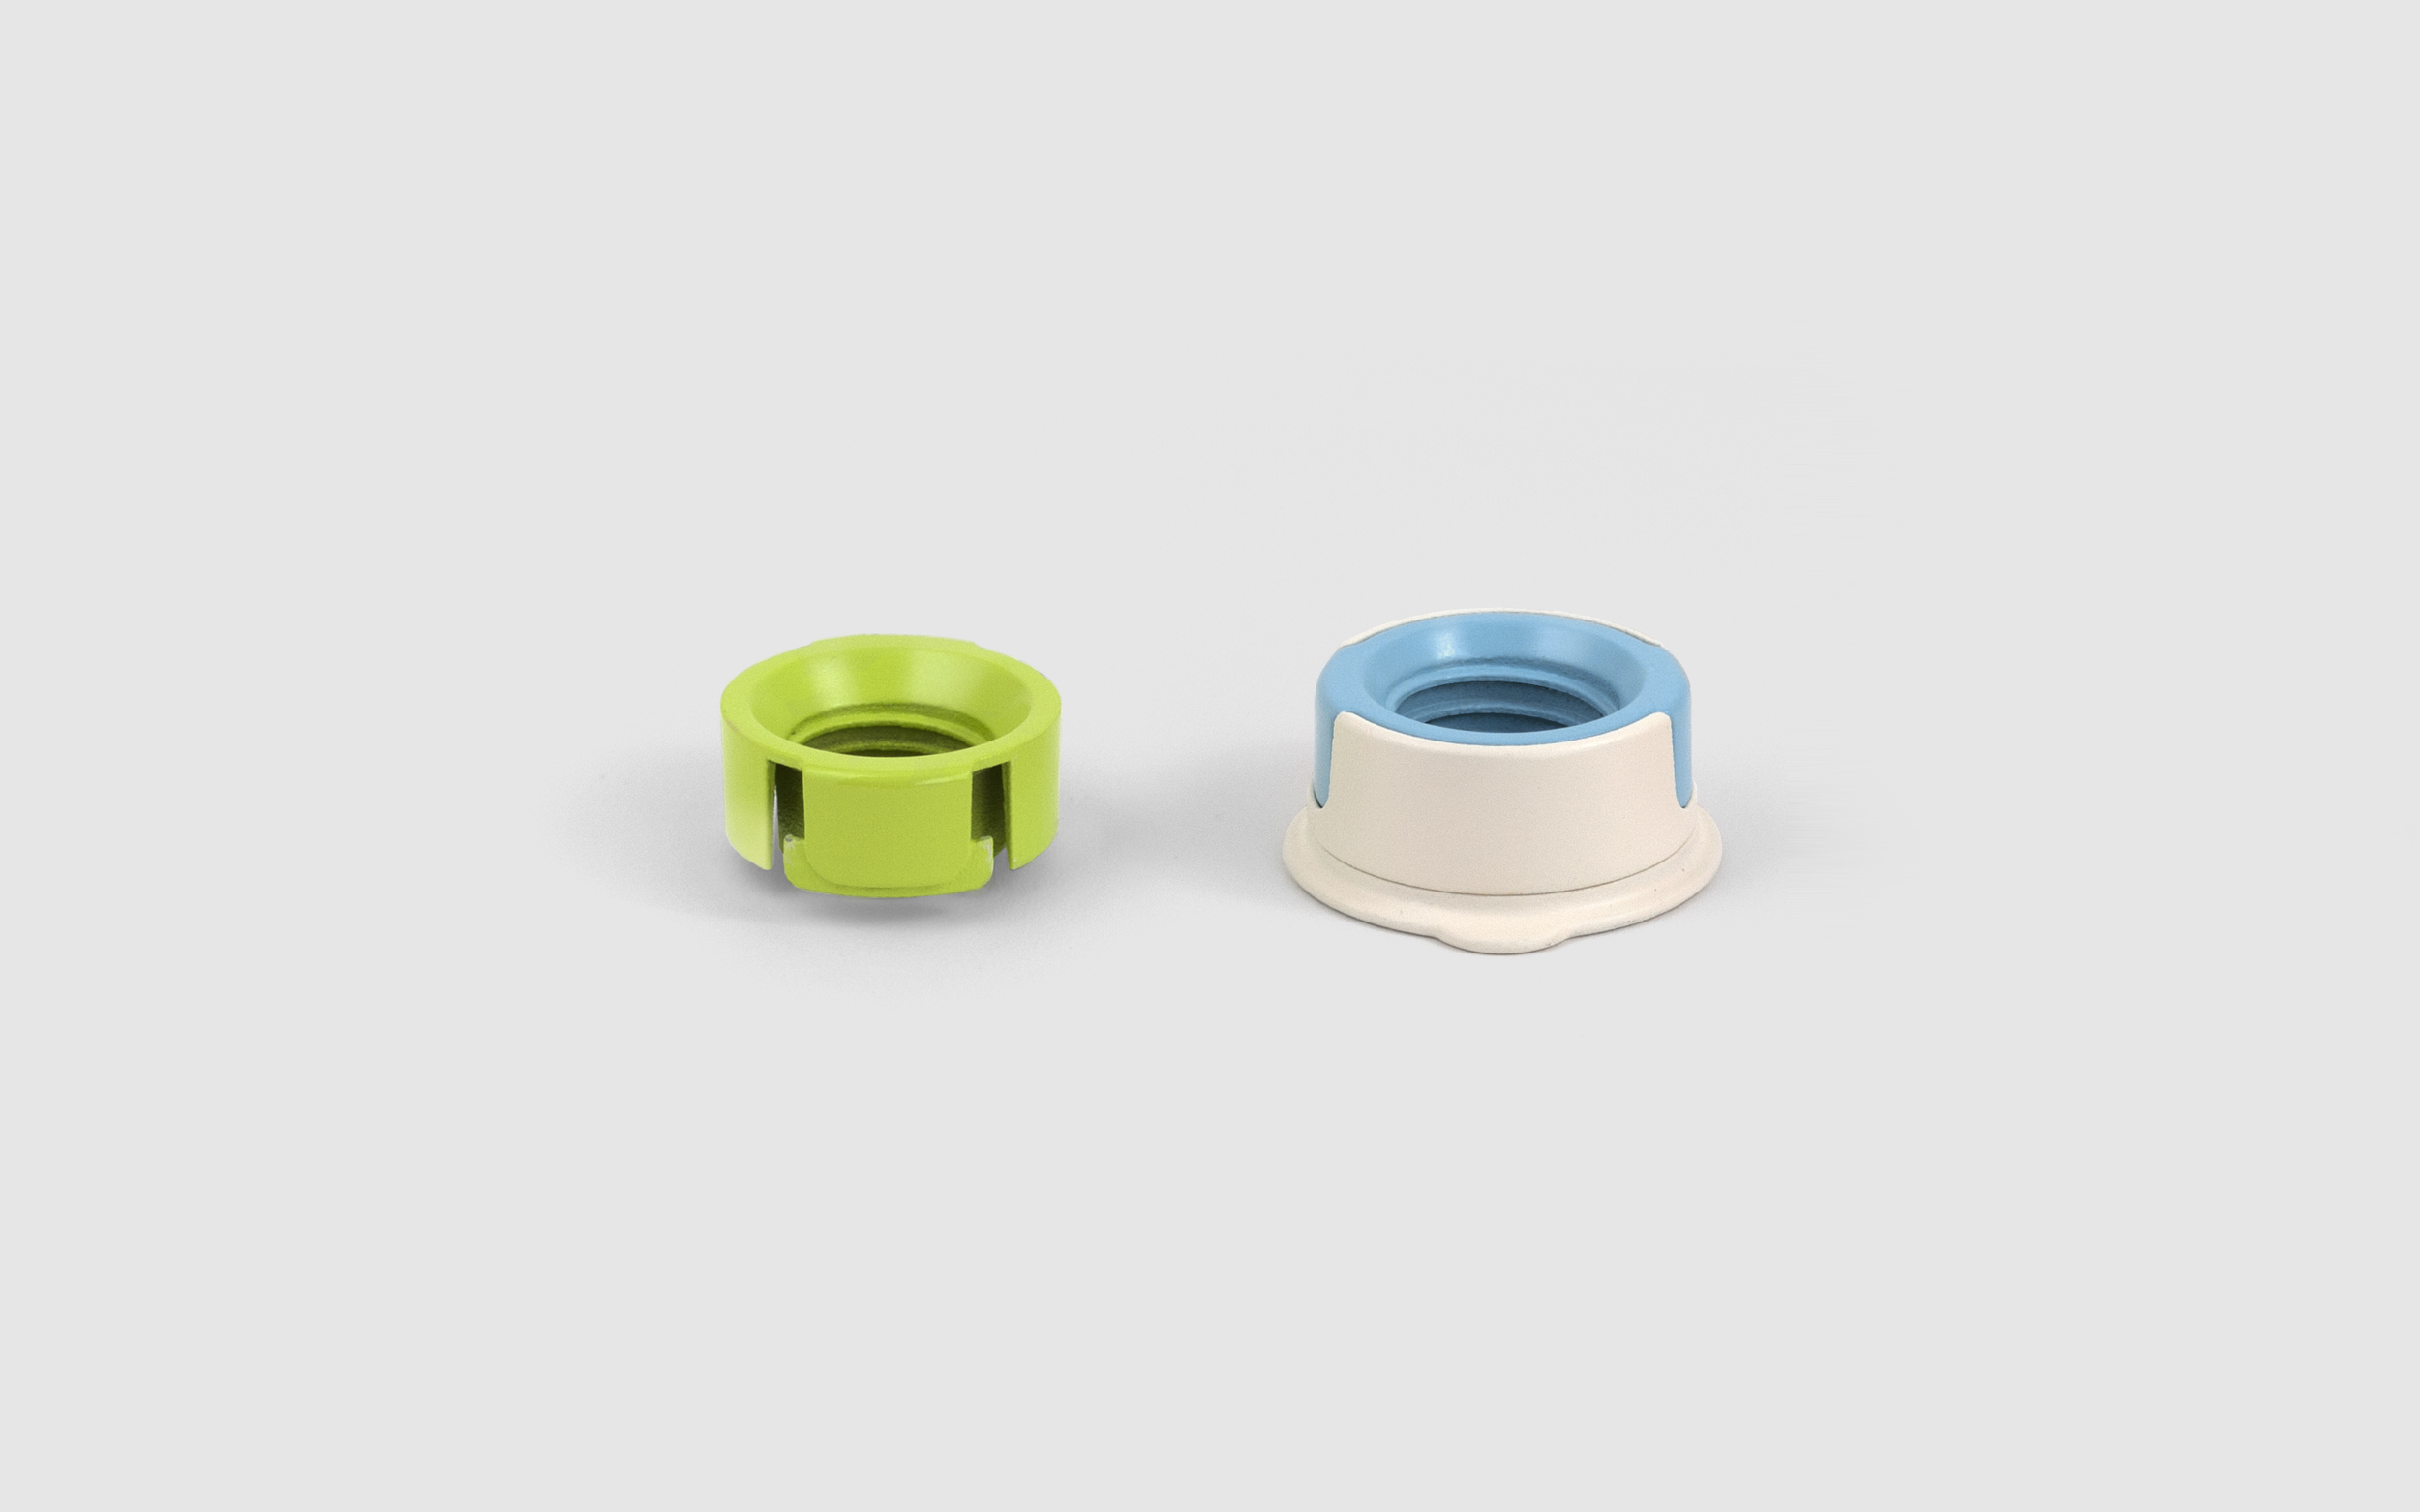 Zero Waste Cap comes with two adapters and a base.